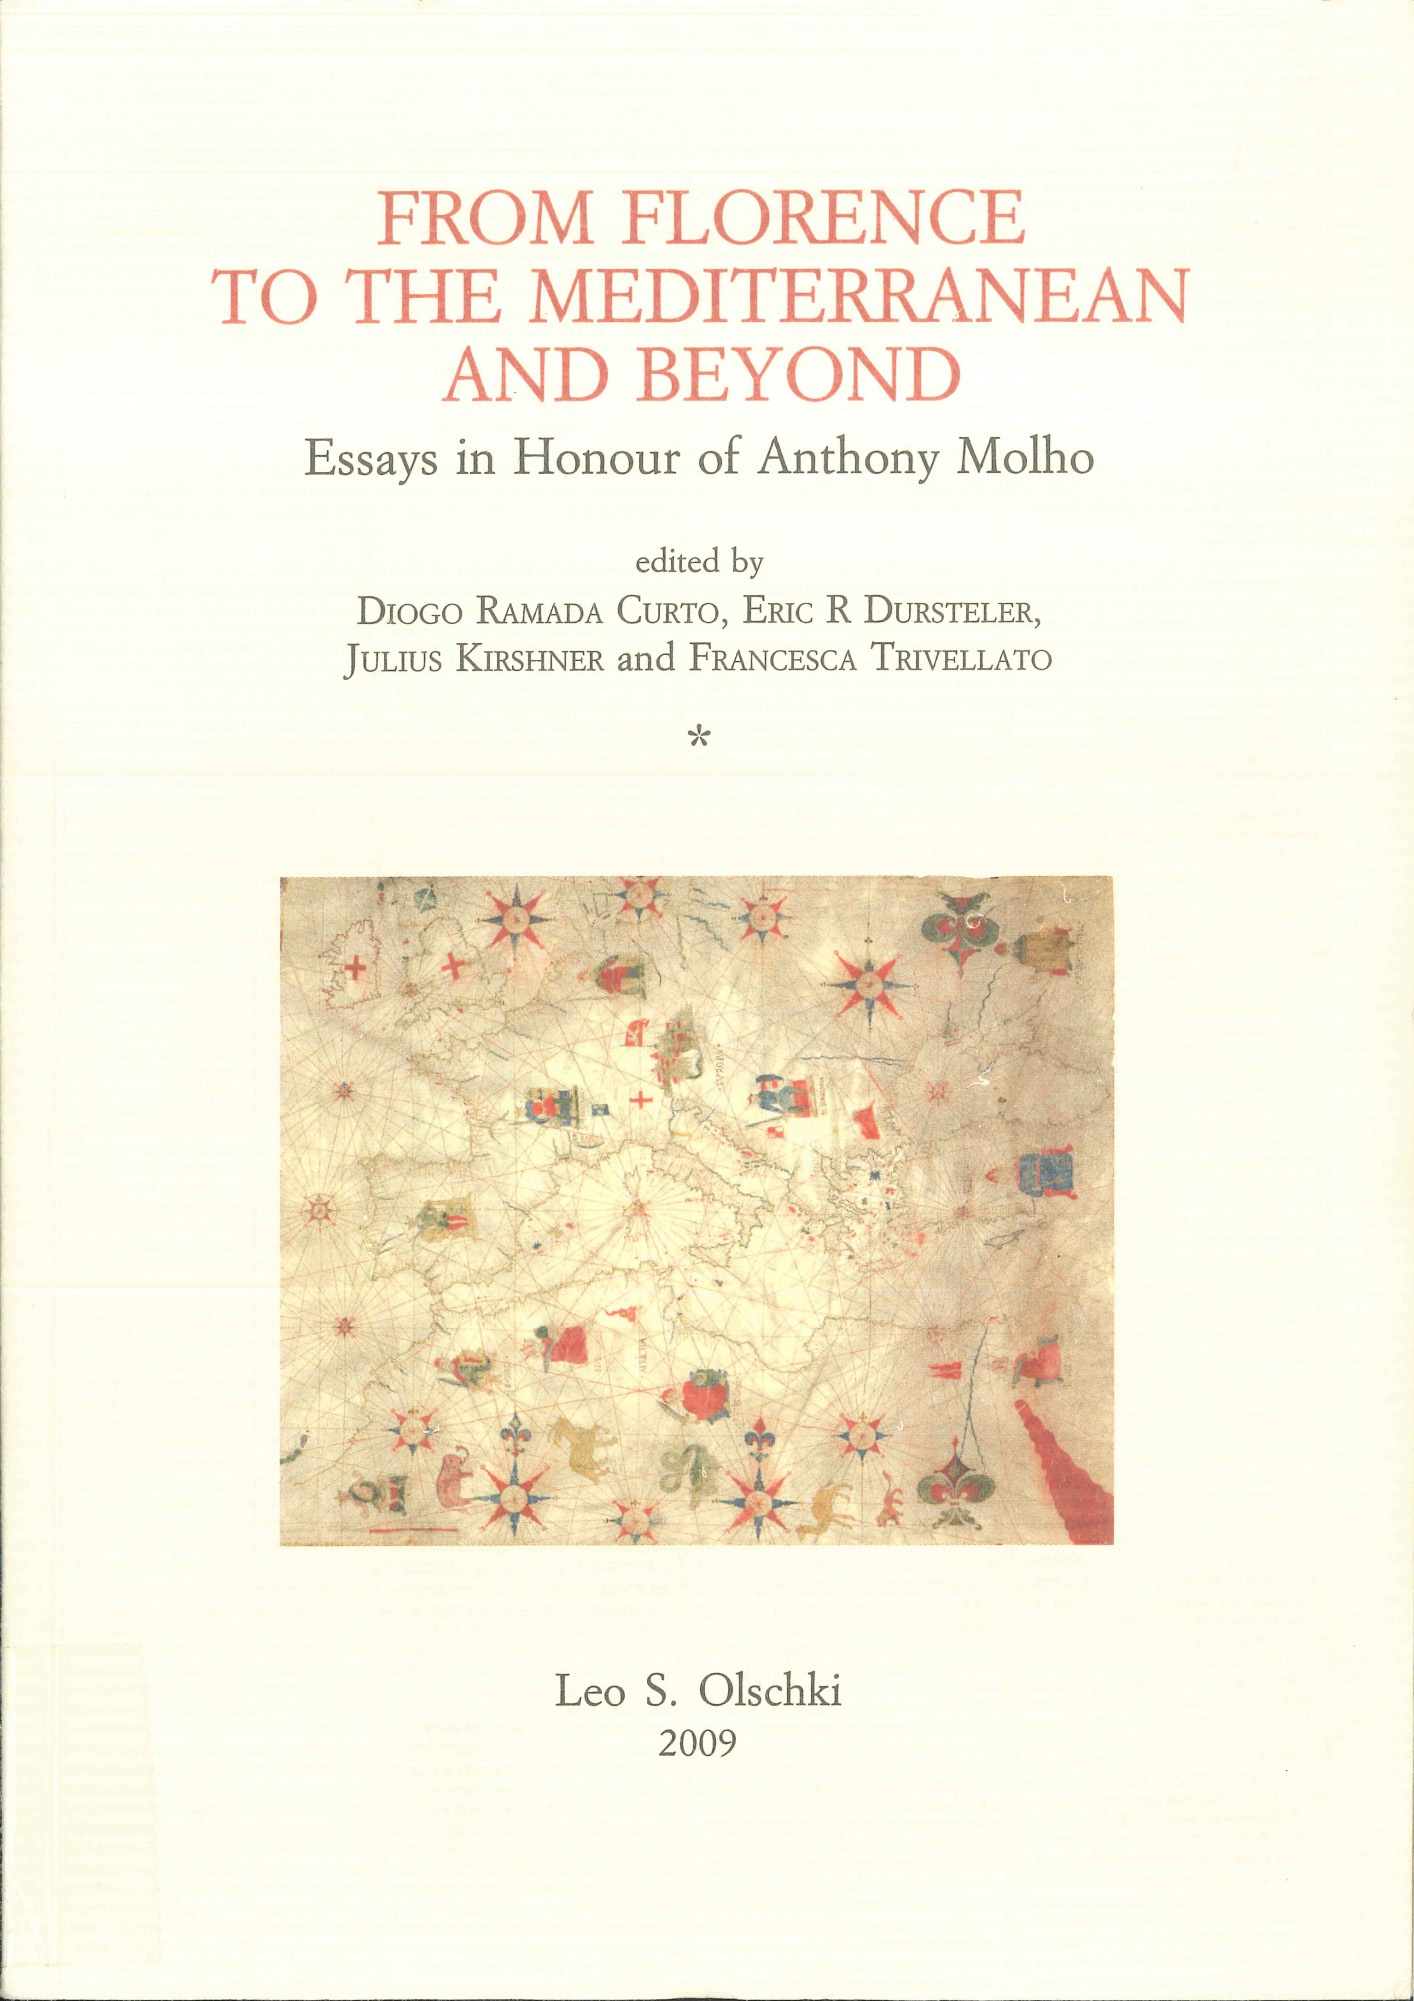 From Florence to the Mediterranean and Beyond: Essays in Honour of Anthony Mohlo